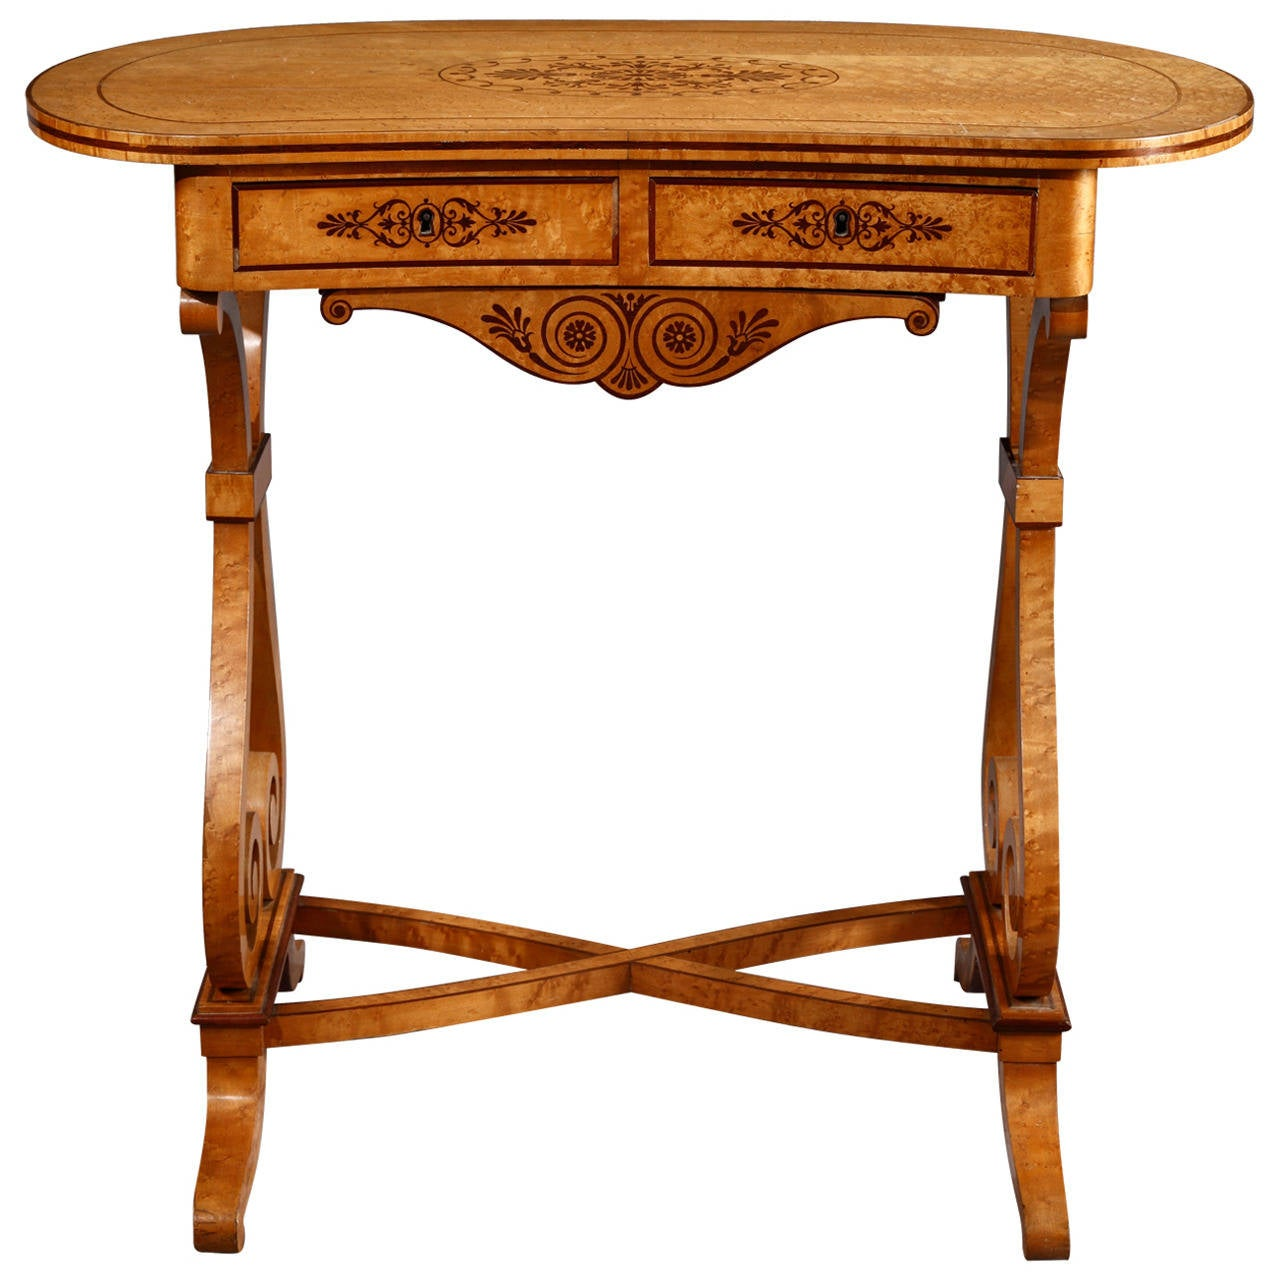 Floating Square Coffee Table In Green And Black Slatelike: Early 19th Century Lemonwood And Amaranth Writing Table At